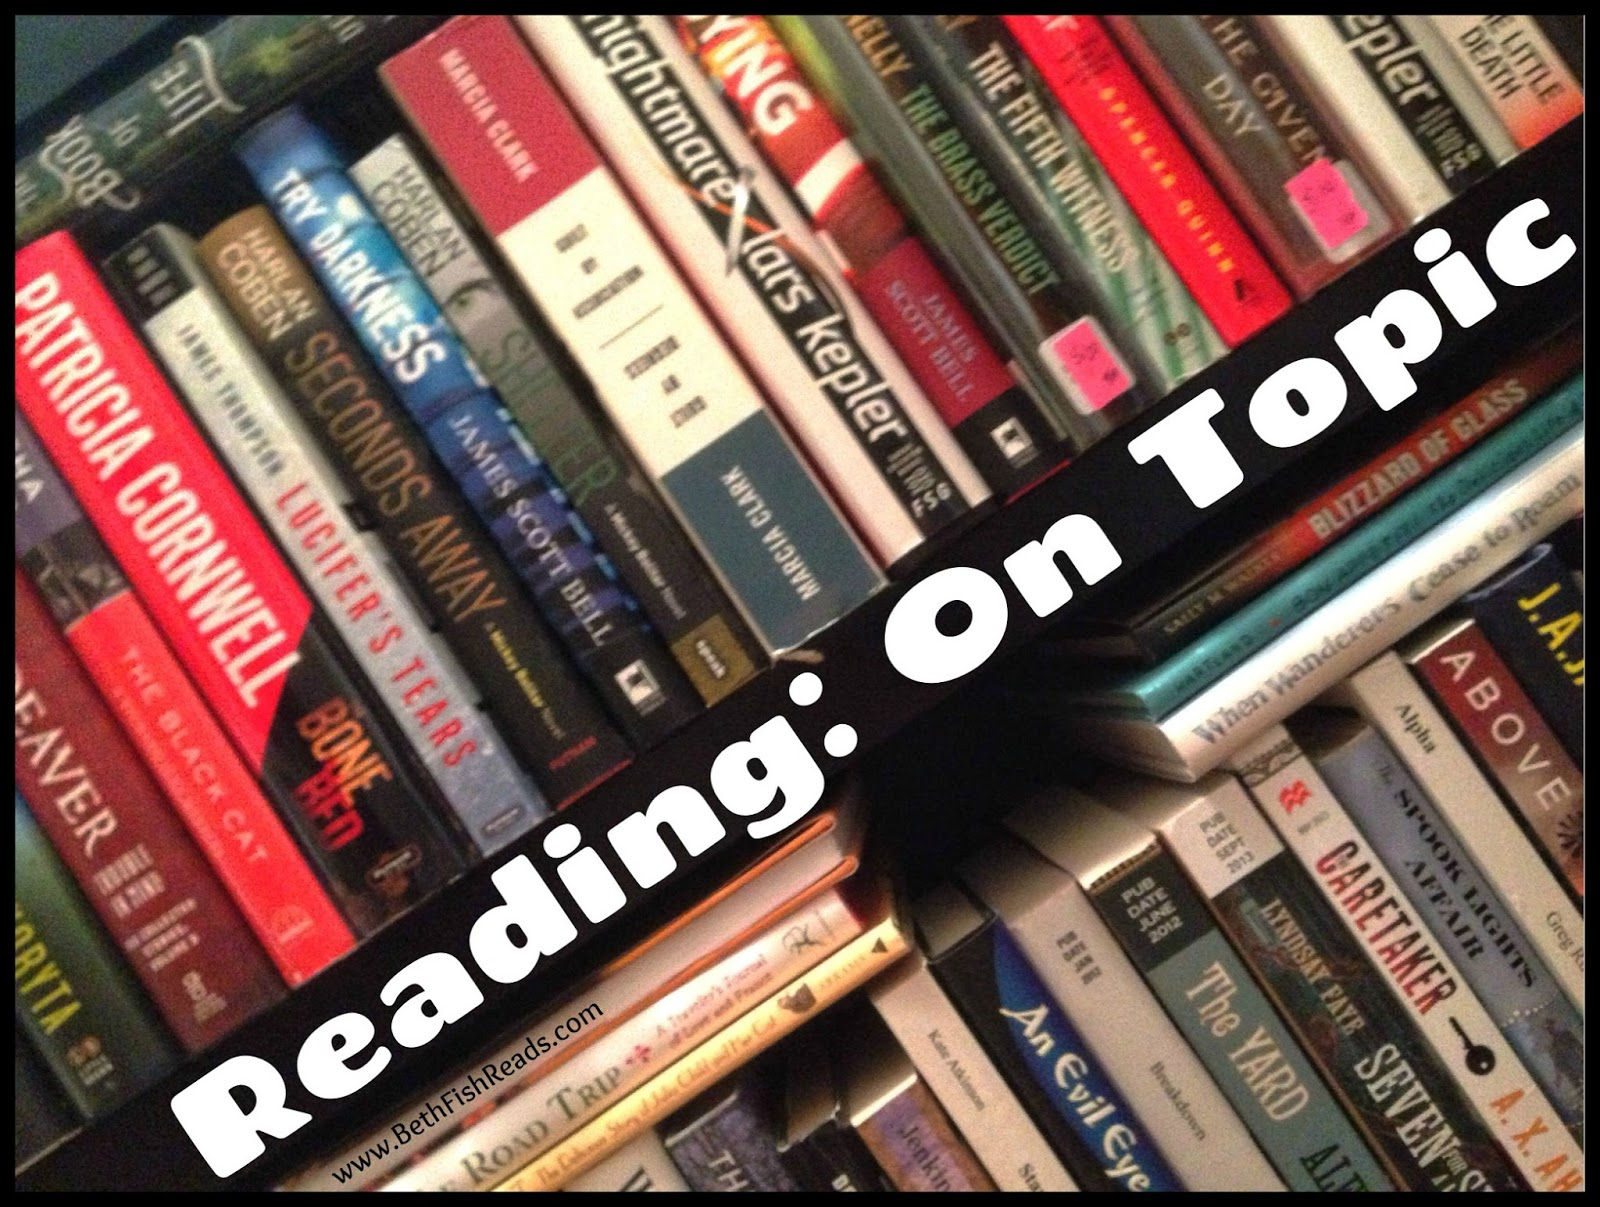 Reading on Topic: 7 Novels Rooted in the Classics